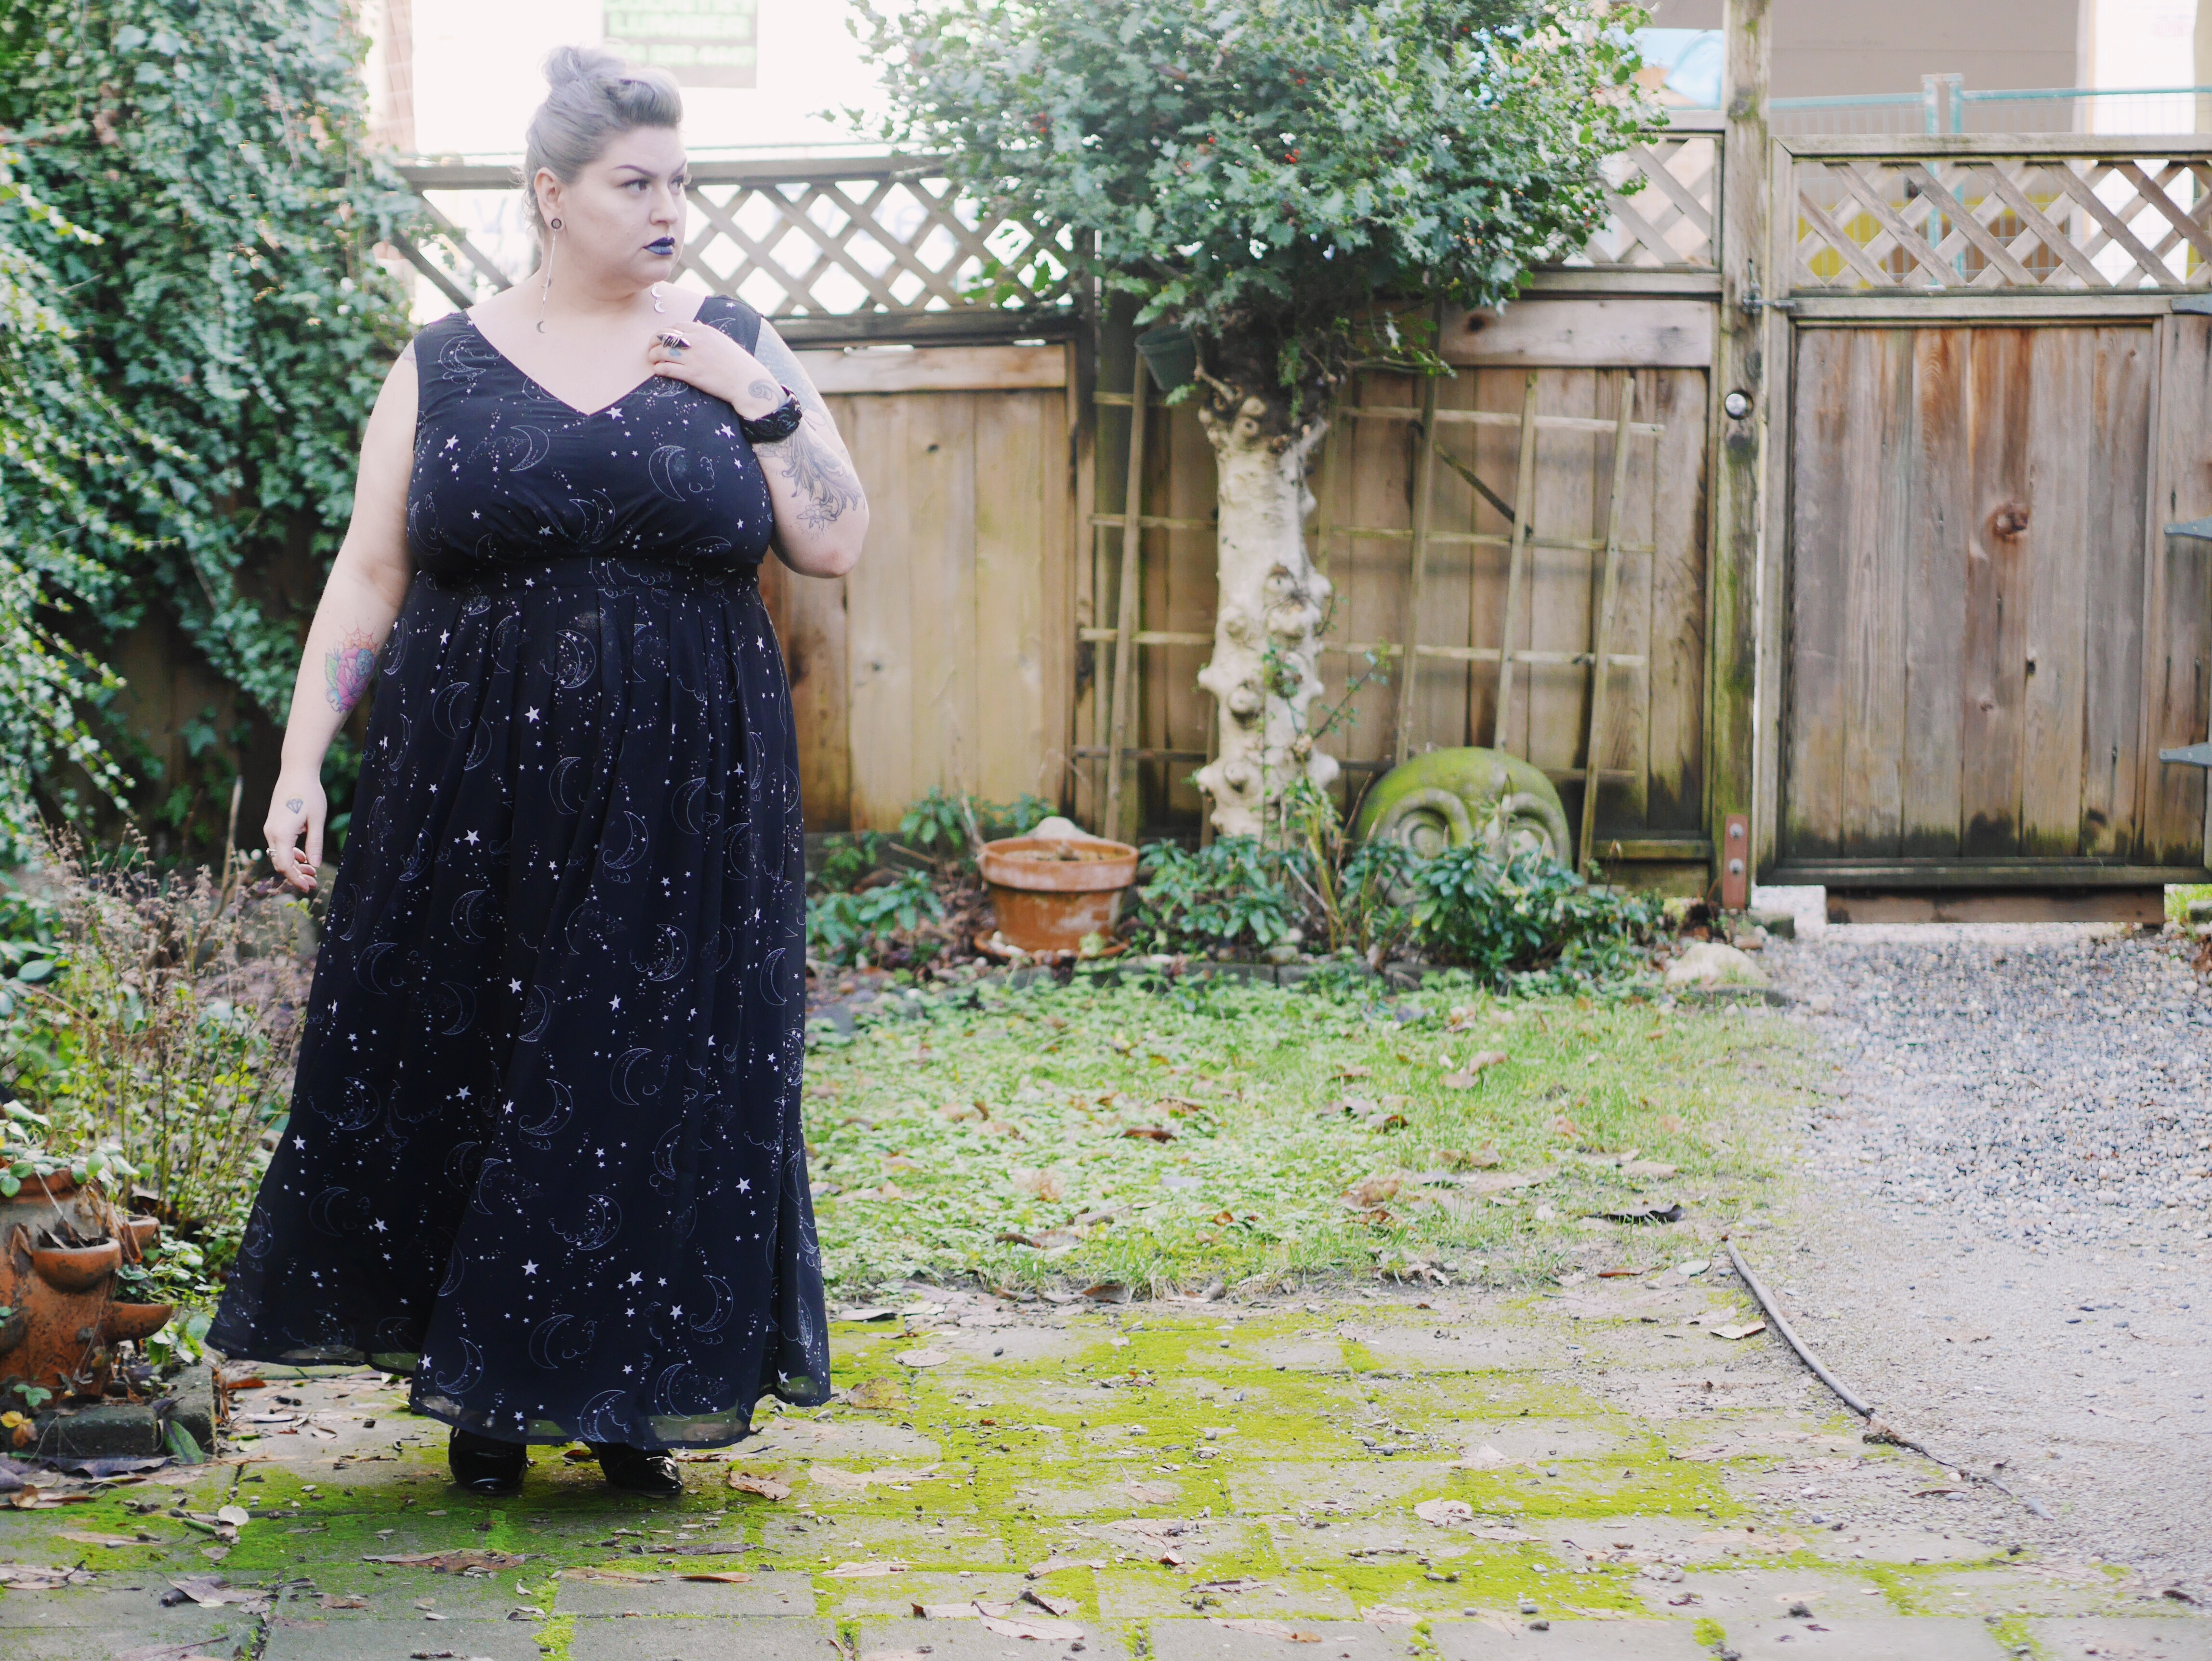 Plus Size Fashion for Women Made to Measure